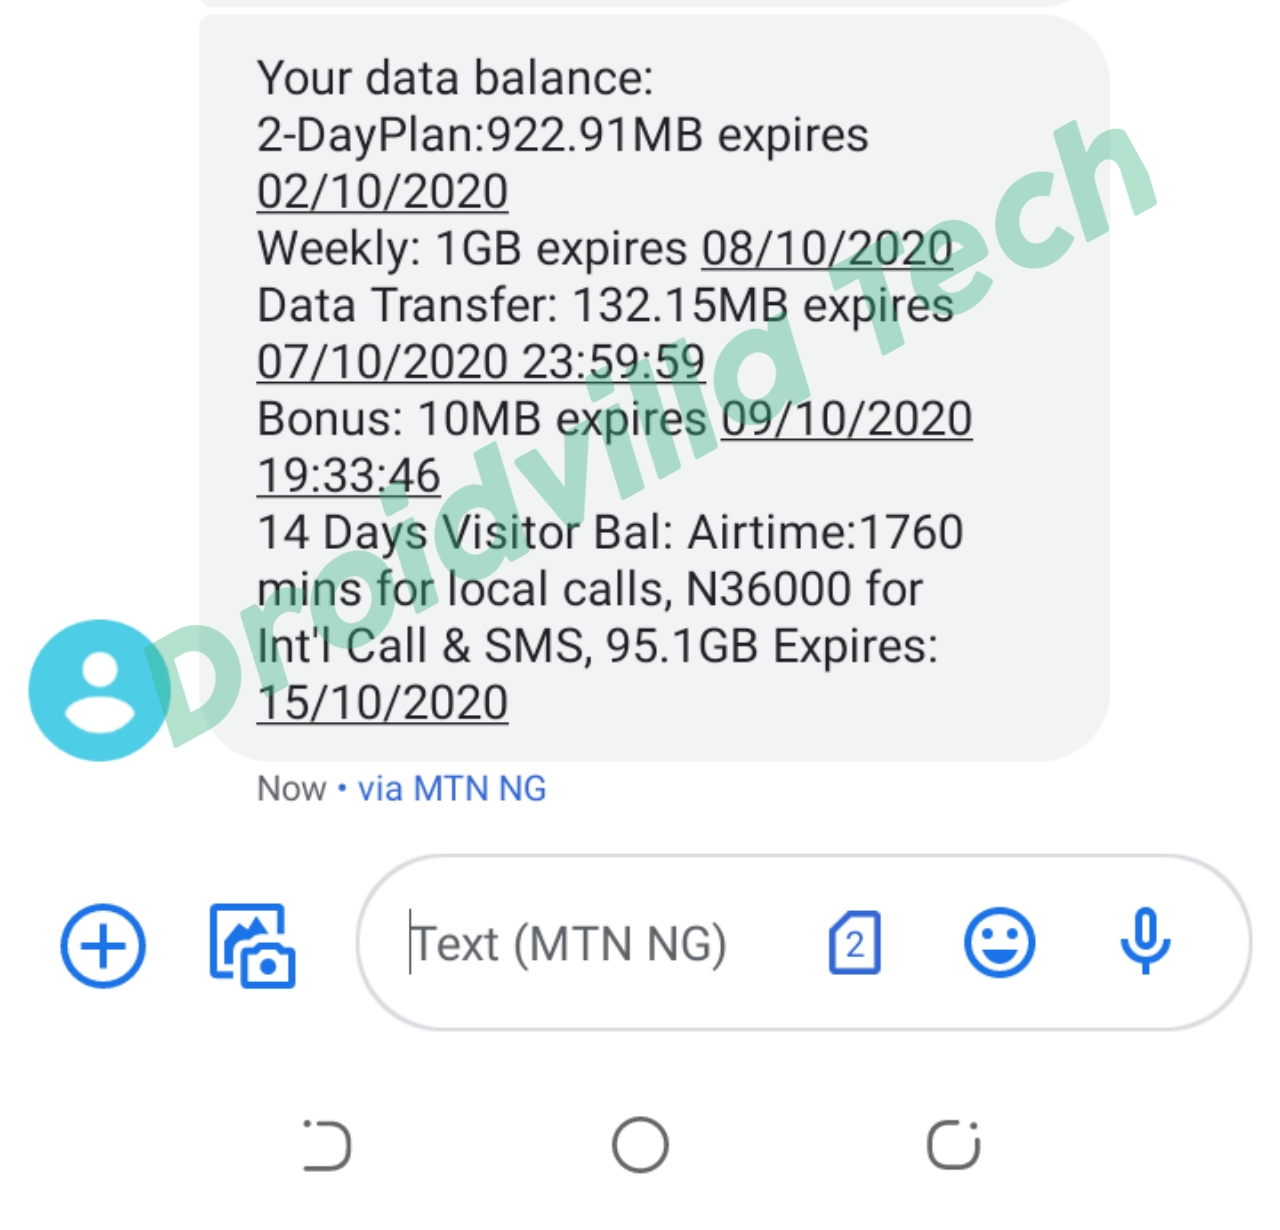 Mtn unlimited data and airtime cheat 2020